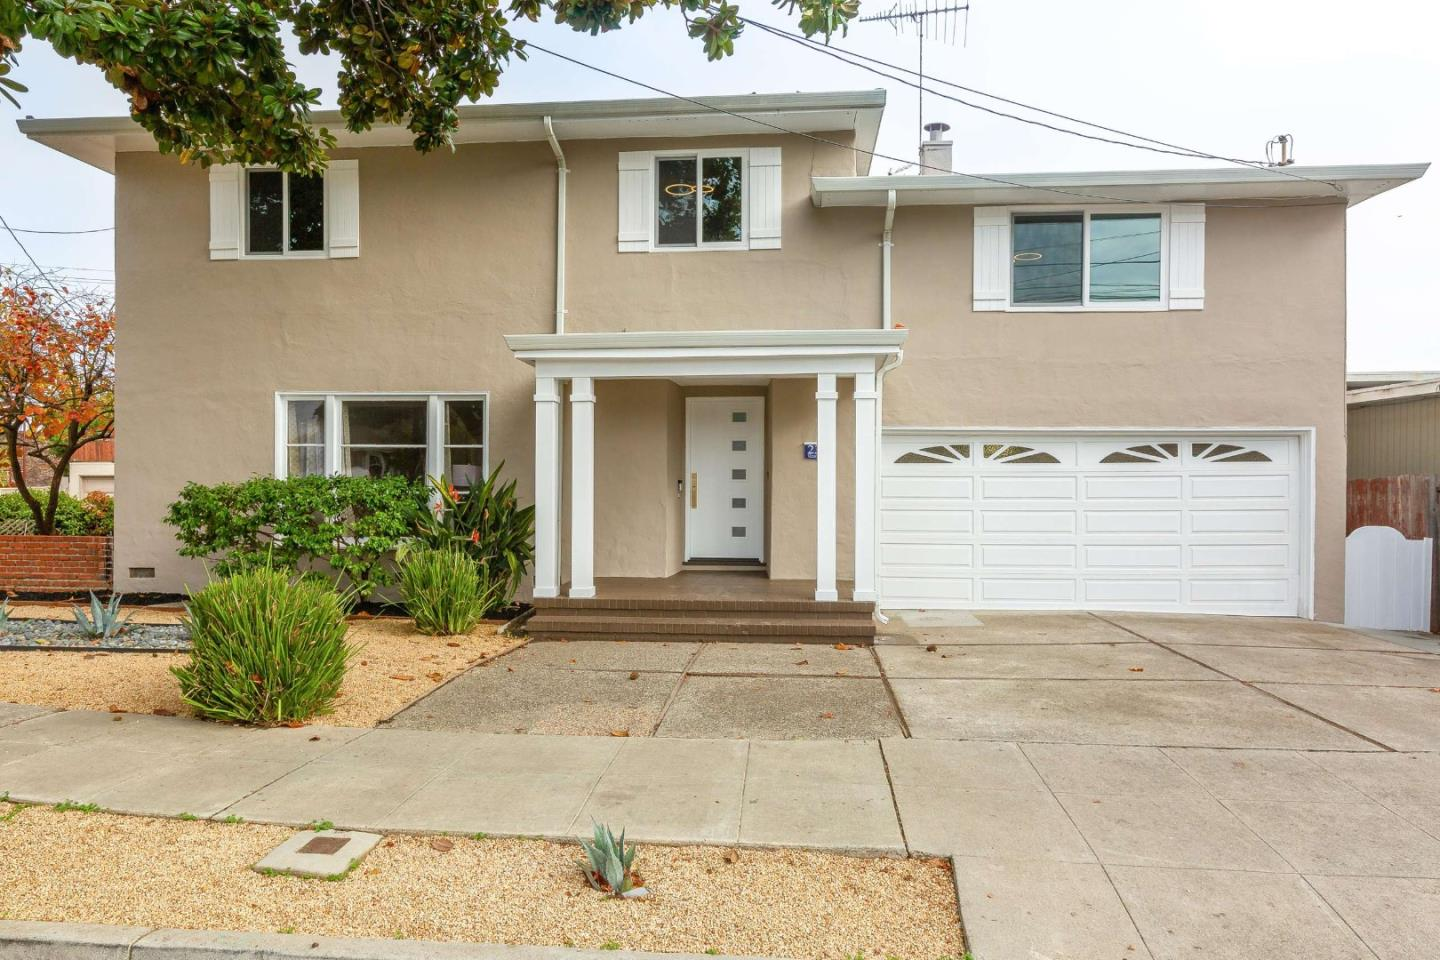 This unique prop. boasts an expansive lot & offers 2 detached homes for the price of 1 SFR. Originally custom-built for the 1st Chinese family in Burlingame, this would make the ideal resid. for a LRG family or those looking to generate a rental income. The impressive newly updated 2-story layout spans 3 diff. LVLs & has 6BRs, 3Bas & a selection of stunning liv. Spaces. Gorgeous HWD FLRS flow underfoot & combine perfectly w/ the crown molding, elegant color palette & abundance of NAT light to create an int. that instantly feels bright & inviting. Theres a formal LR, w/ a FP, a formal DR that has direct access thru to the kitchen & BKFST nook. Cooking will be a joy in the stylish kitchen w/a feature tile backsplash, sweeping countertops, SS APPL & a garden window. Theres an entertainers dream rumpus rm, w/ a FP, along w/ an office while 4BRs & 1 BA are perched on the 3rd FLR. Ensuring absolute opulence, the MASTR suite takes up an entire FLR & boasts a BA w/ a tub & a tiled shower.